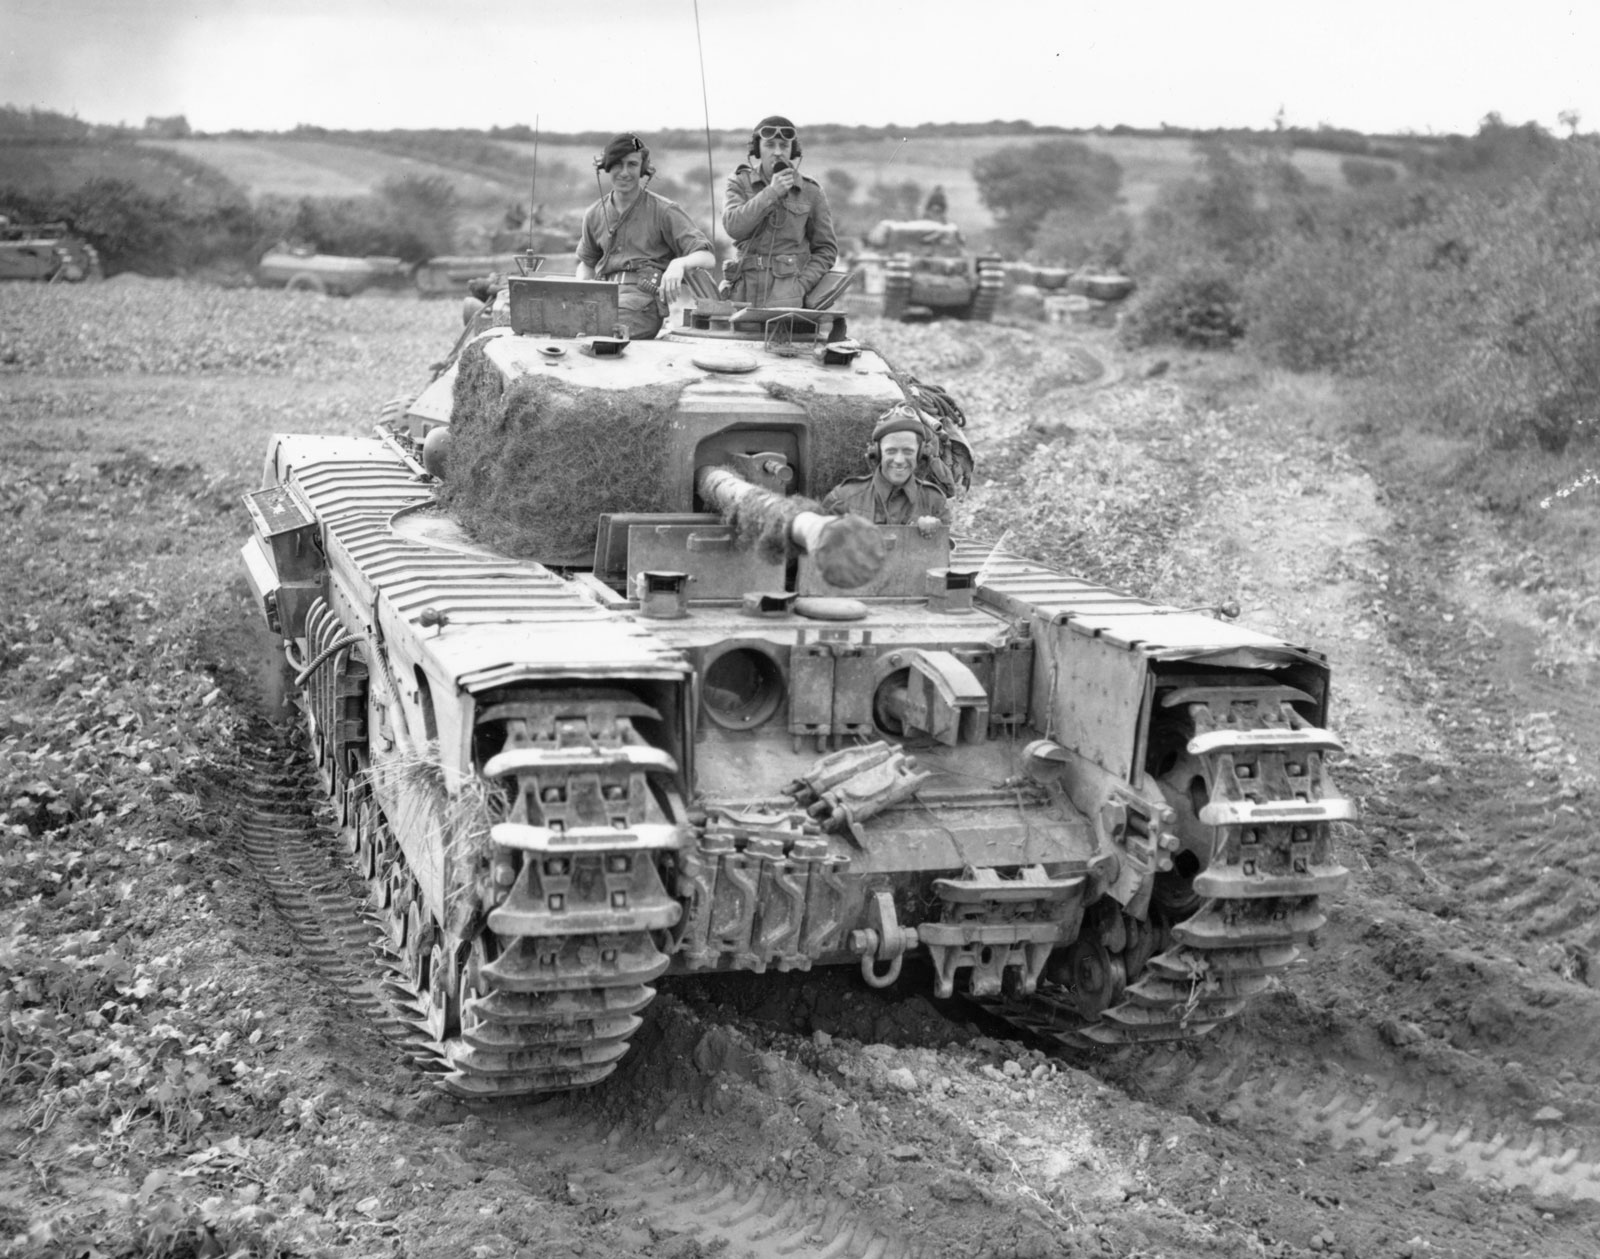 Churchill Crocodile flame thrower tank training some where in England for D Day, early 1944.